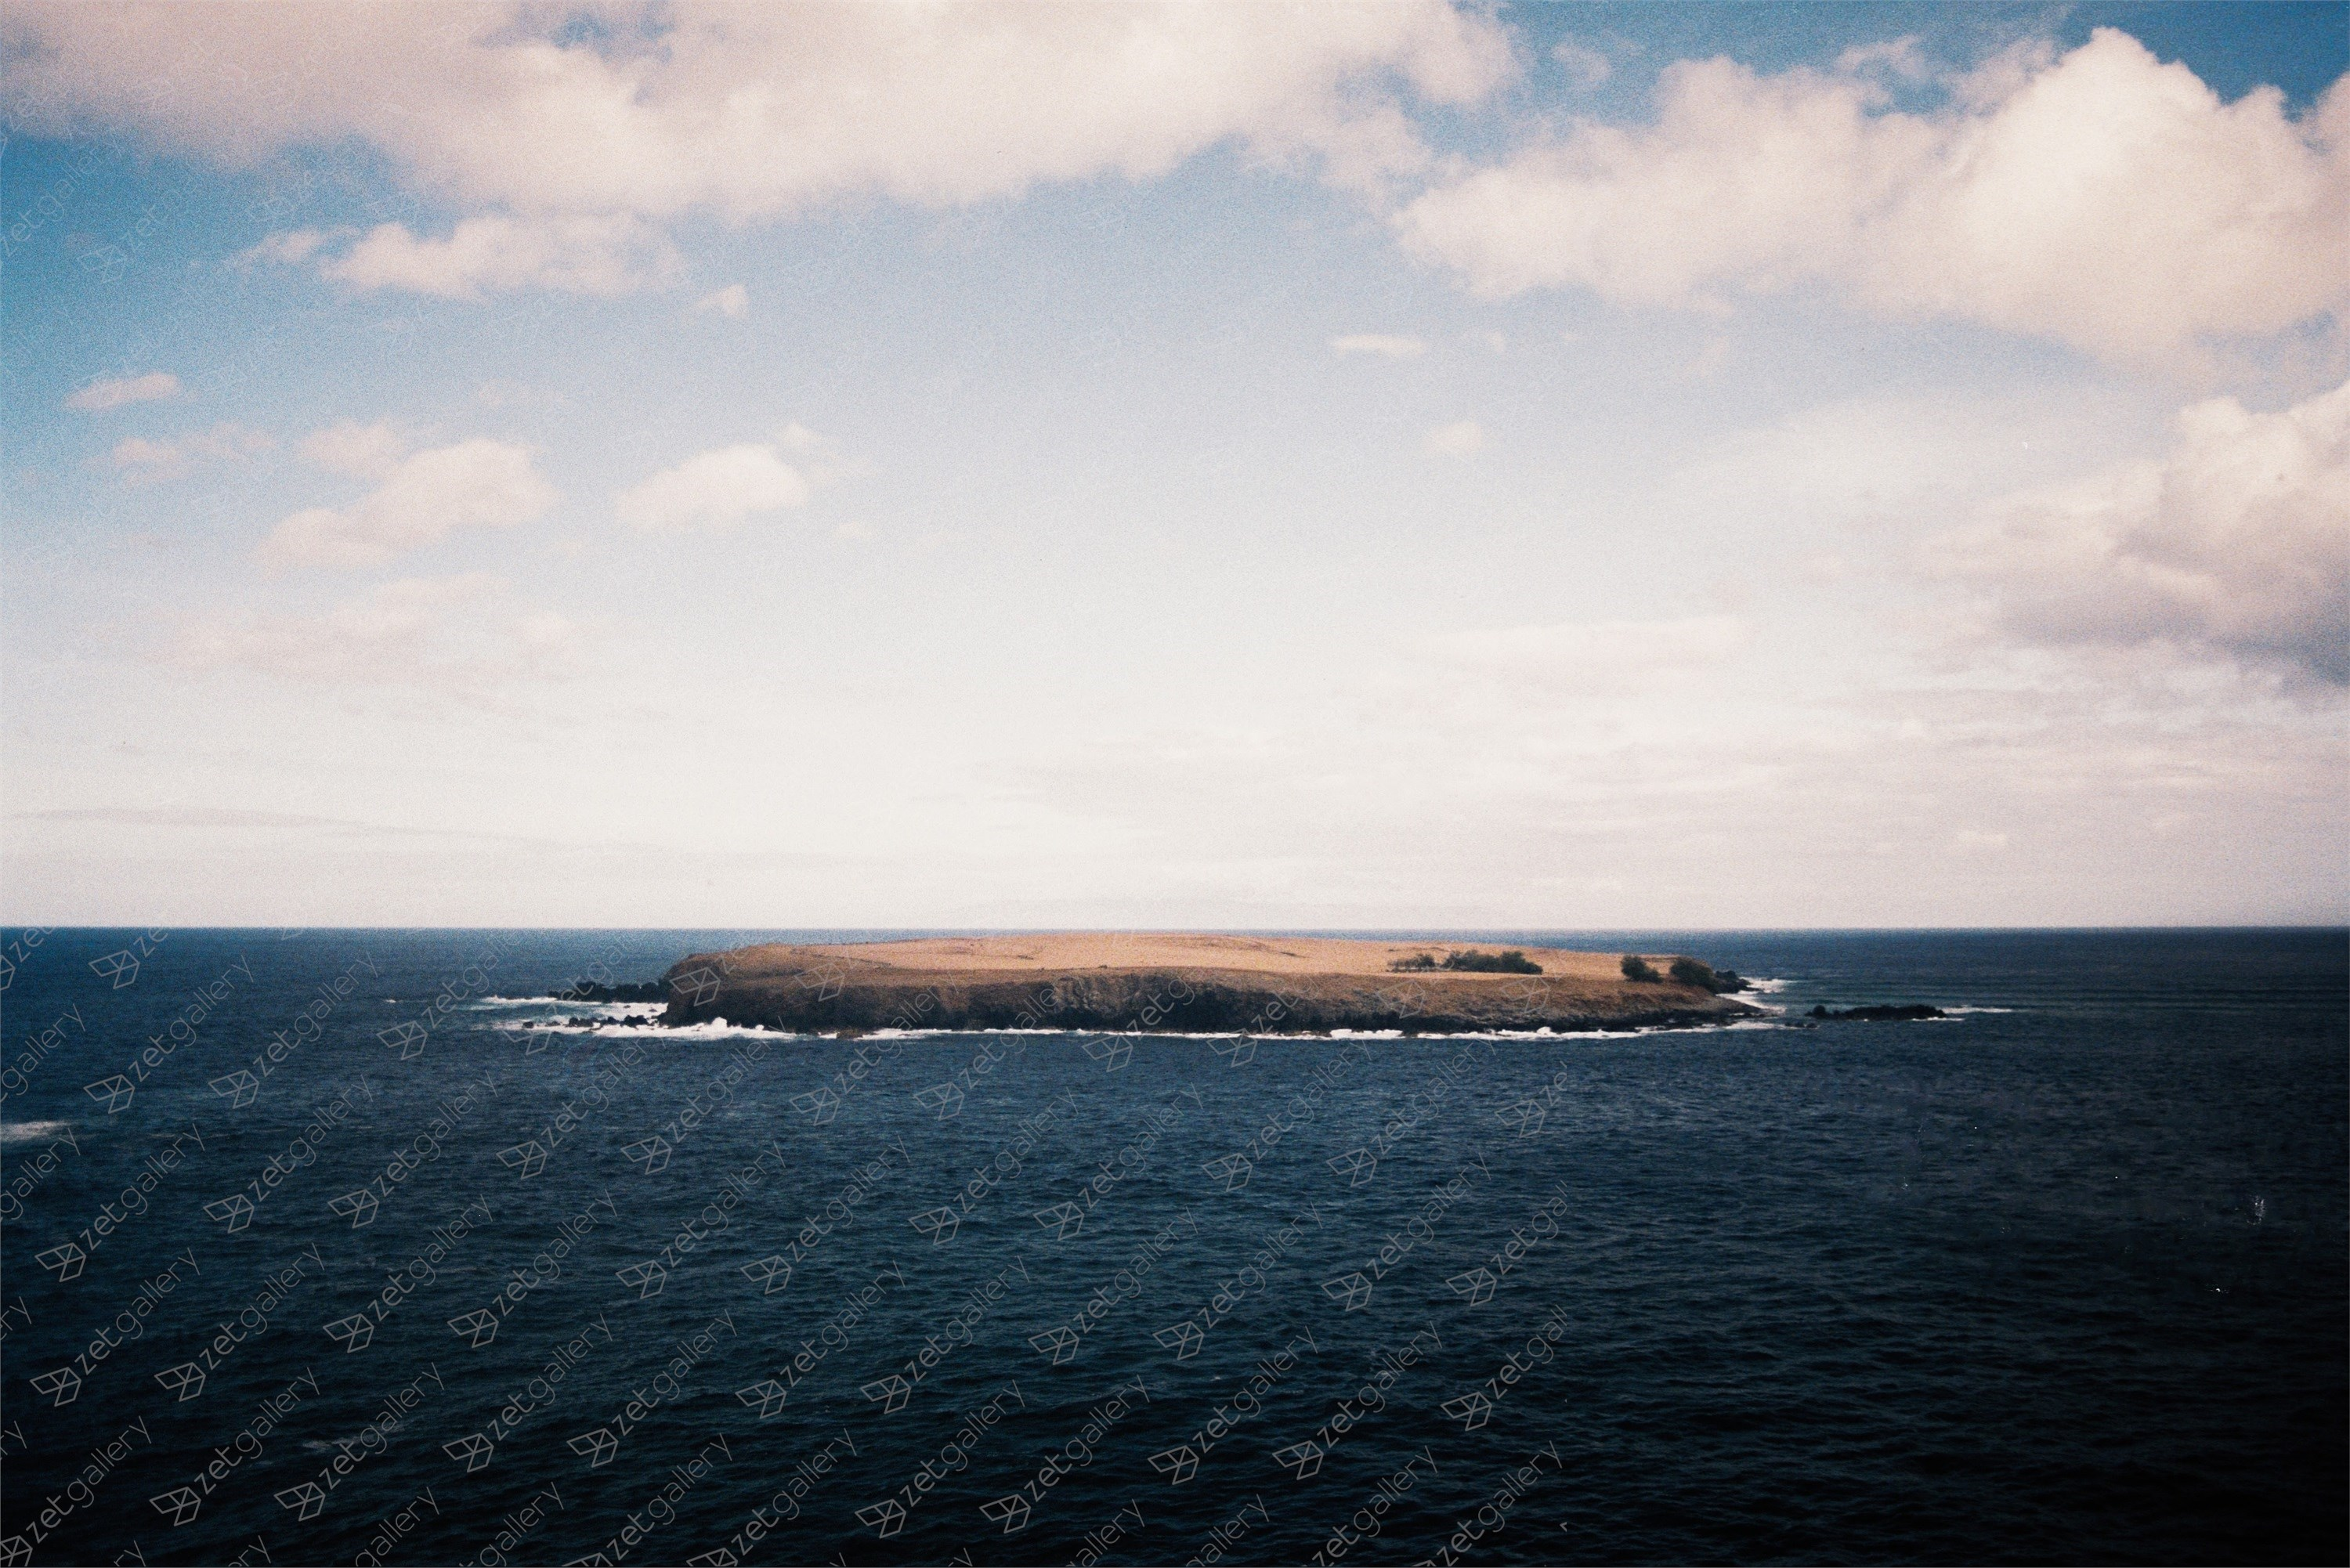 Um ilhéu sozinho / An islet by itself, original Landscape Analog Photography by Miguel De